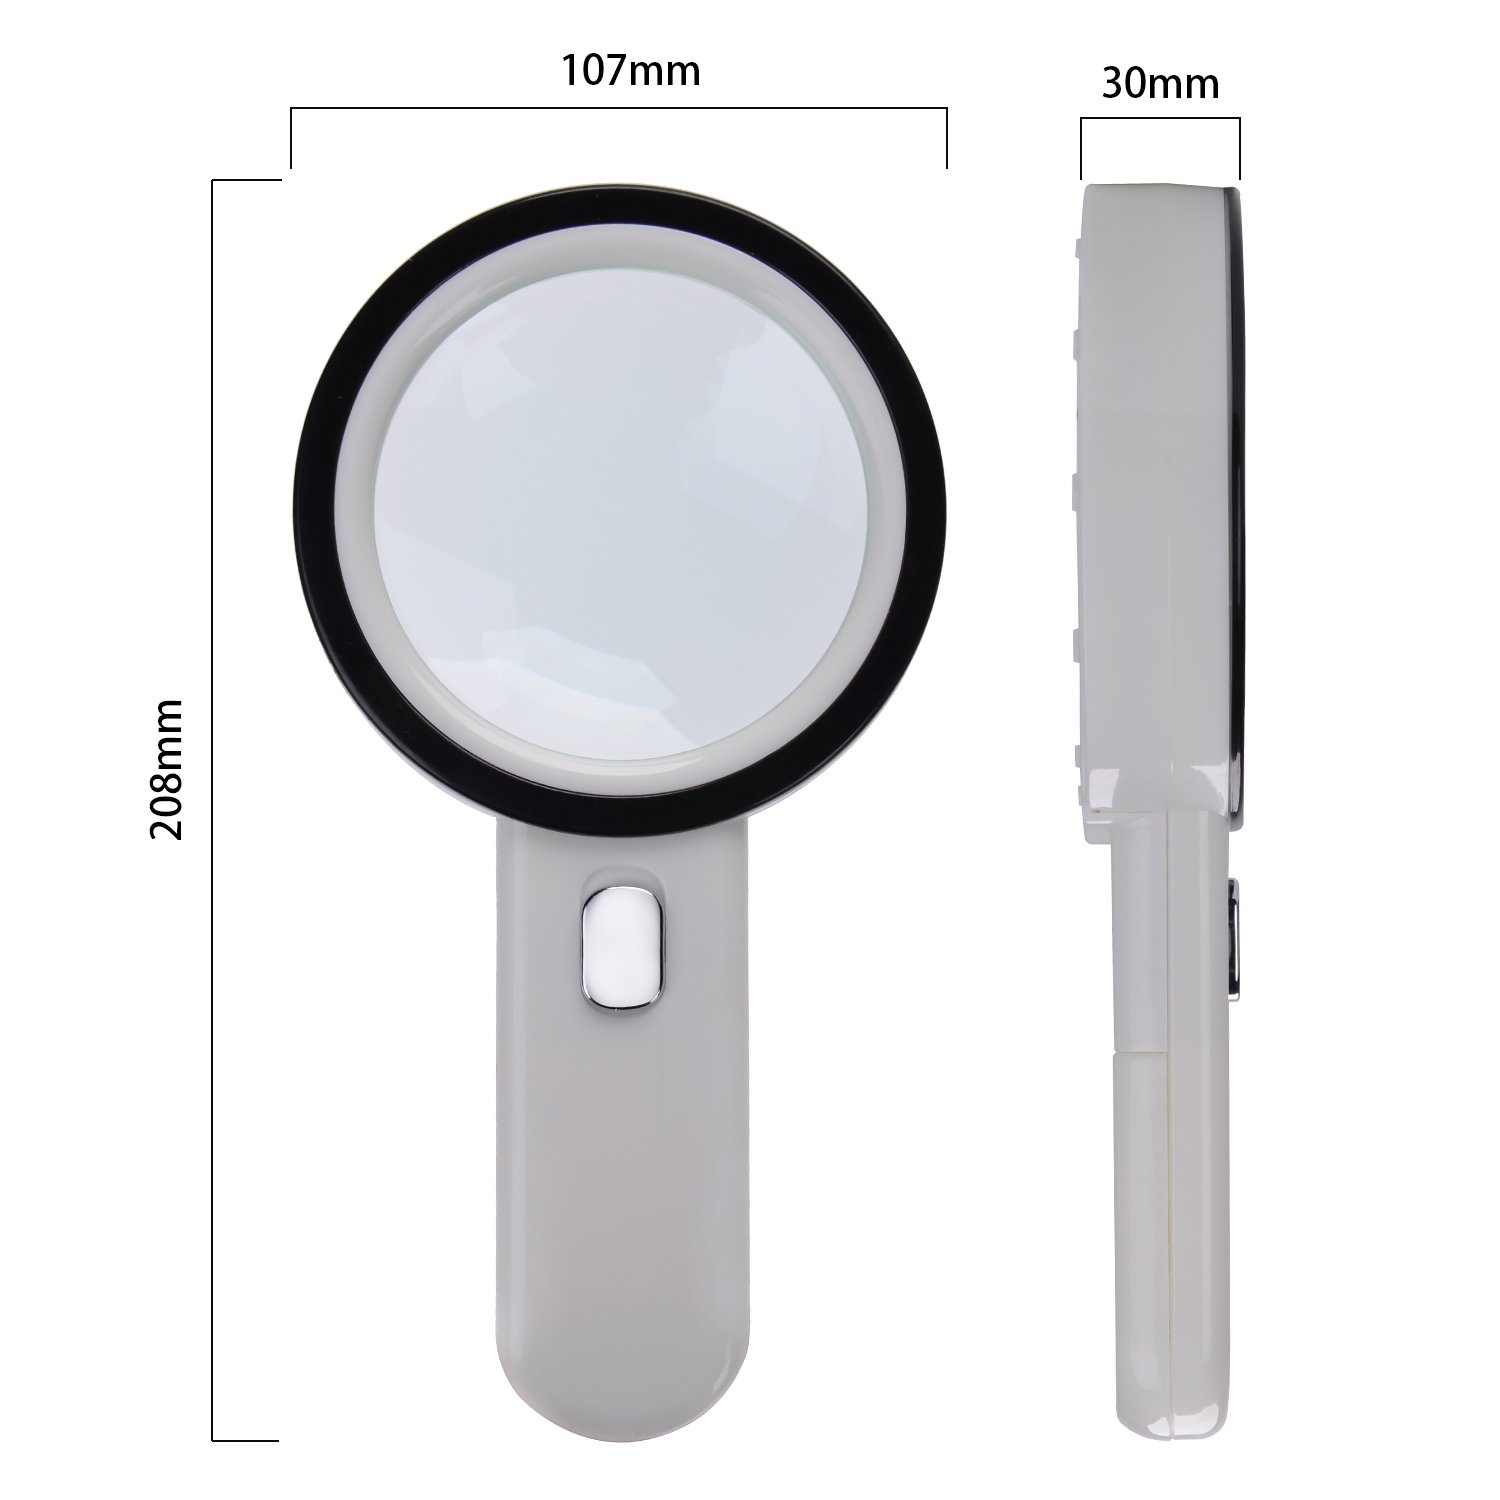 XYK Extra Large Handheld Magnifying Glass with Light White White Best Illuminated Magnifier for Reading,Macular Degeneration,Inspection,Exploring,Hobbies